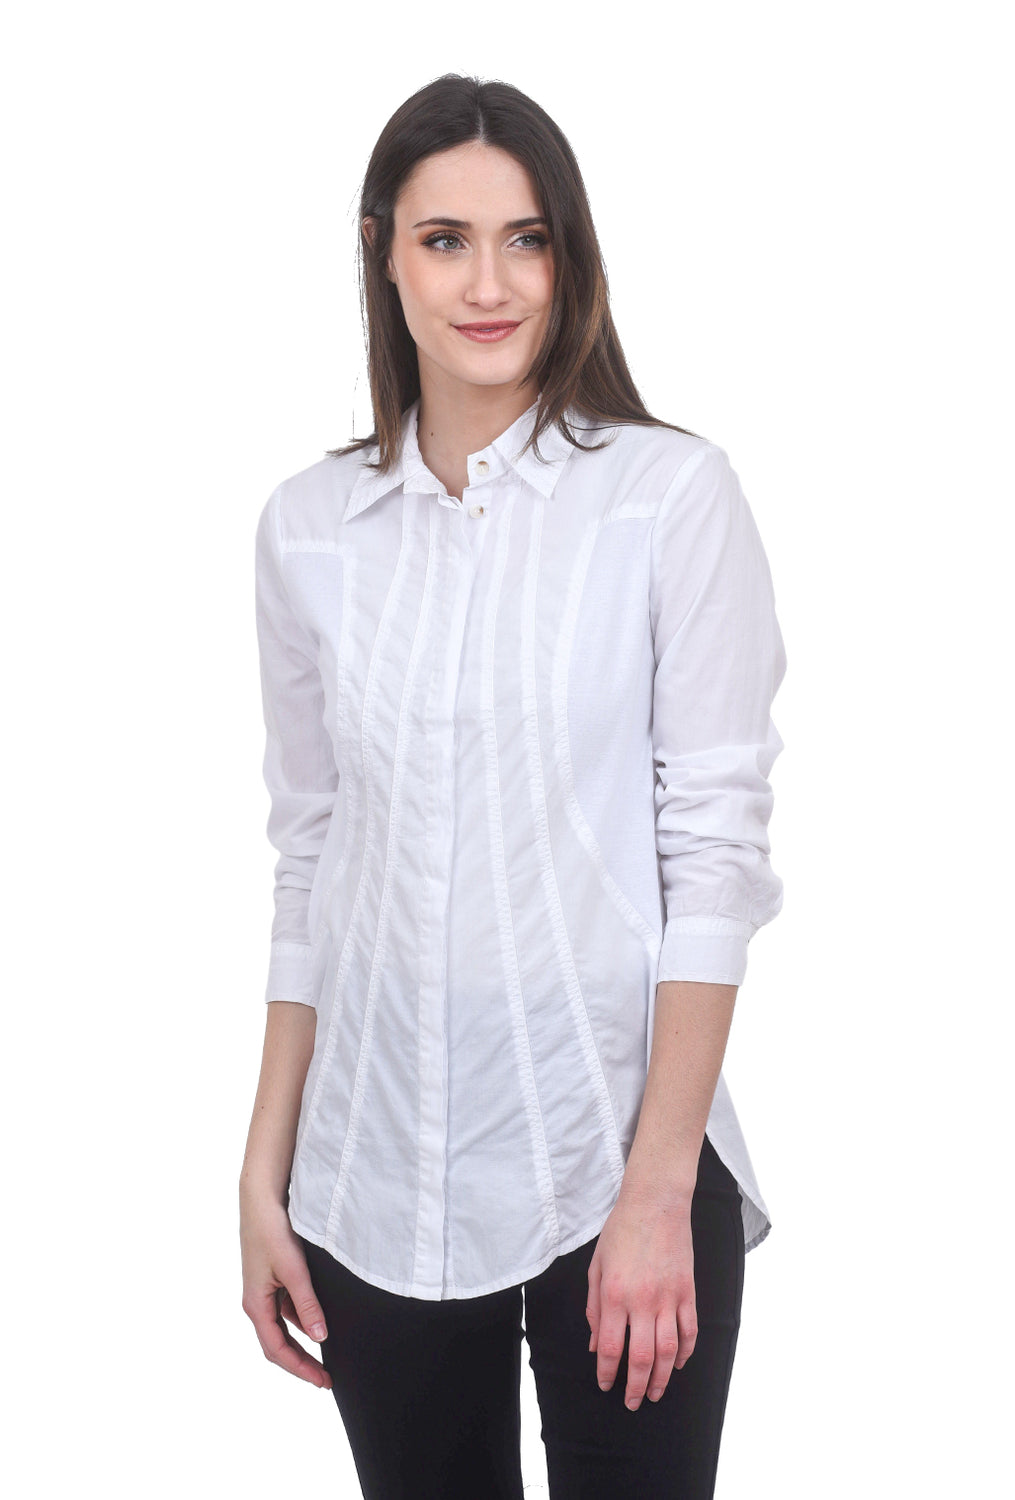 XCVI Ioan Button-Up, White